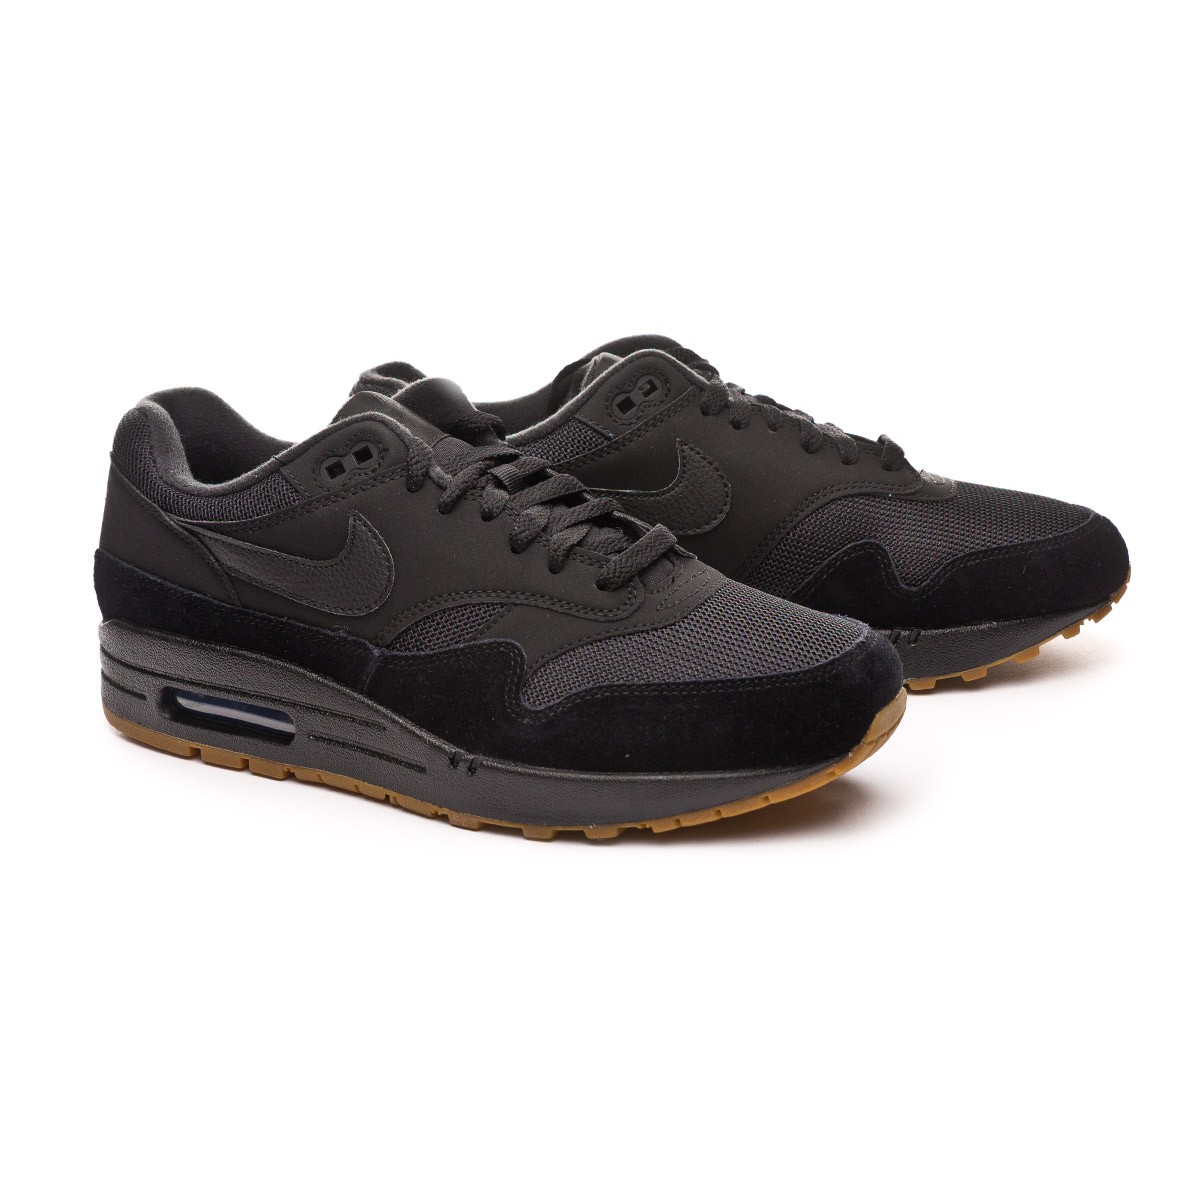 oficial de ventas calientes descuento especial moda mejor valorada Trainers Nike Air Max 1 2019 Black-Gum med brown - Football store ...